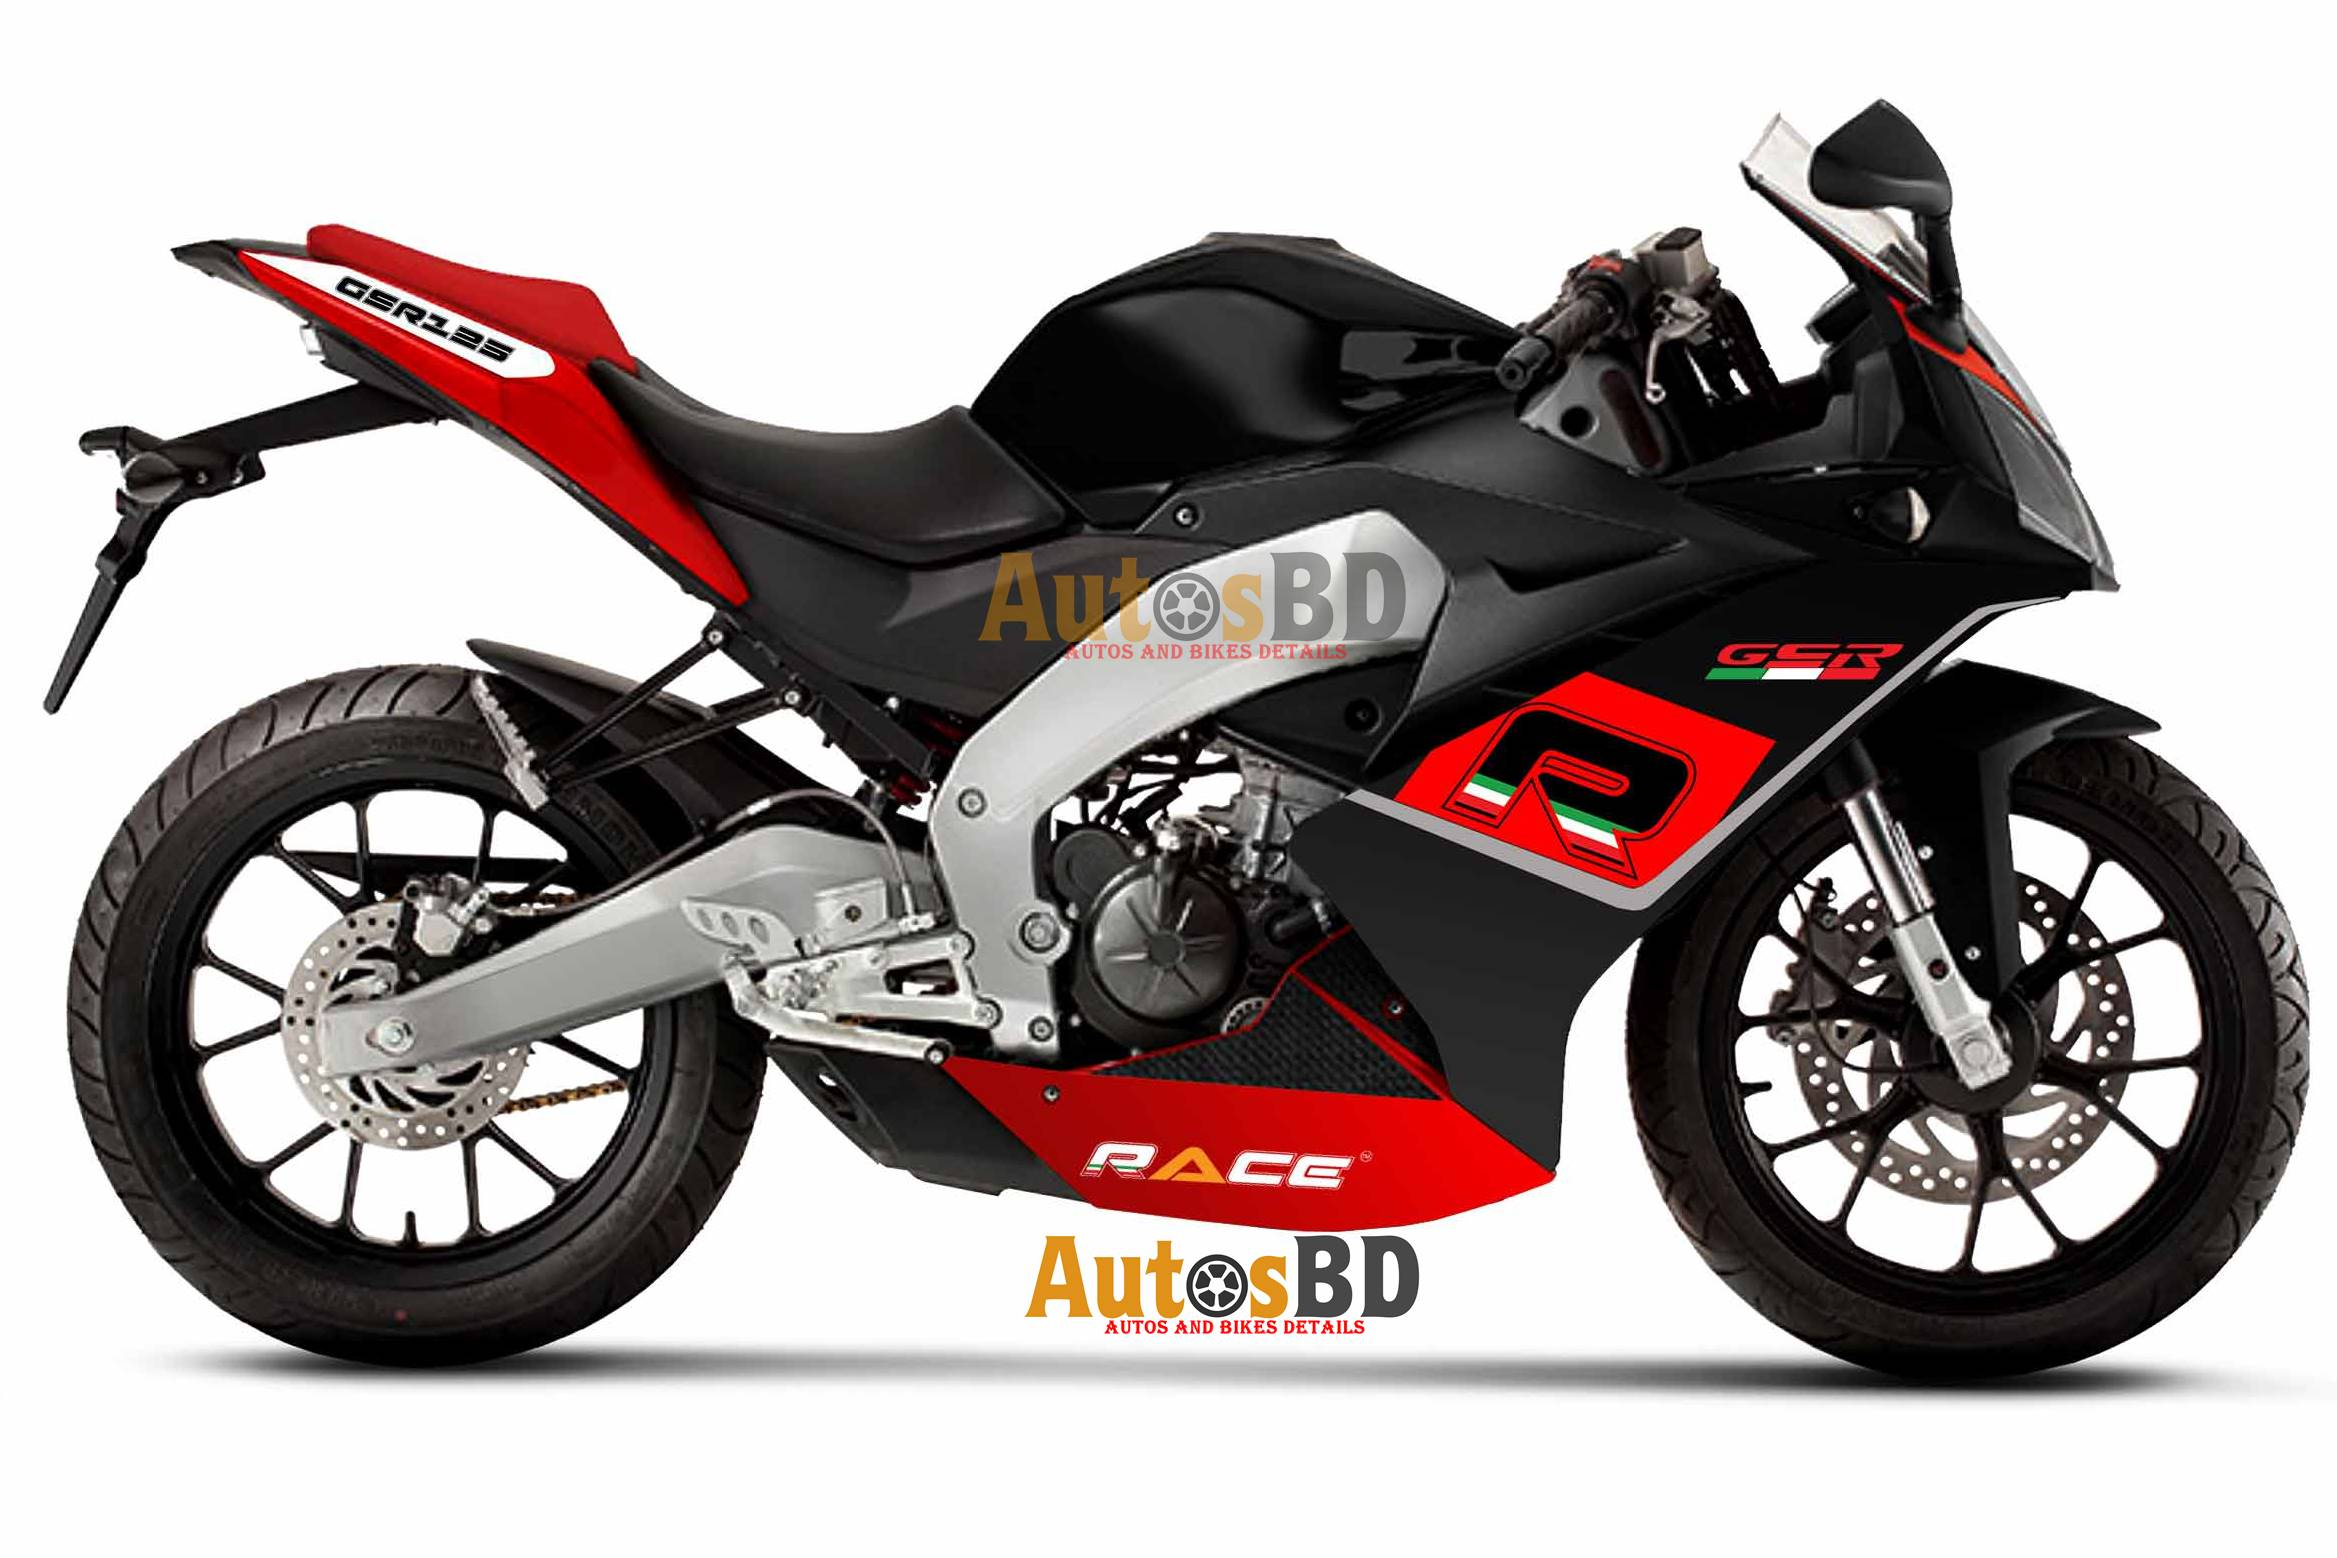 Race GSR125 Motorcycle Price in Bangladesh